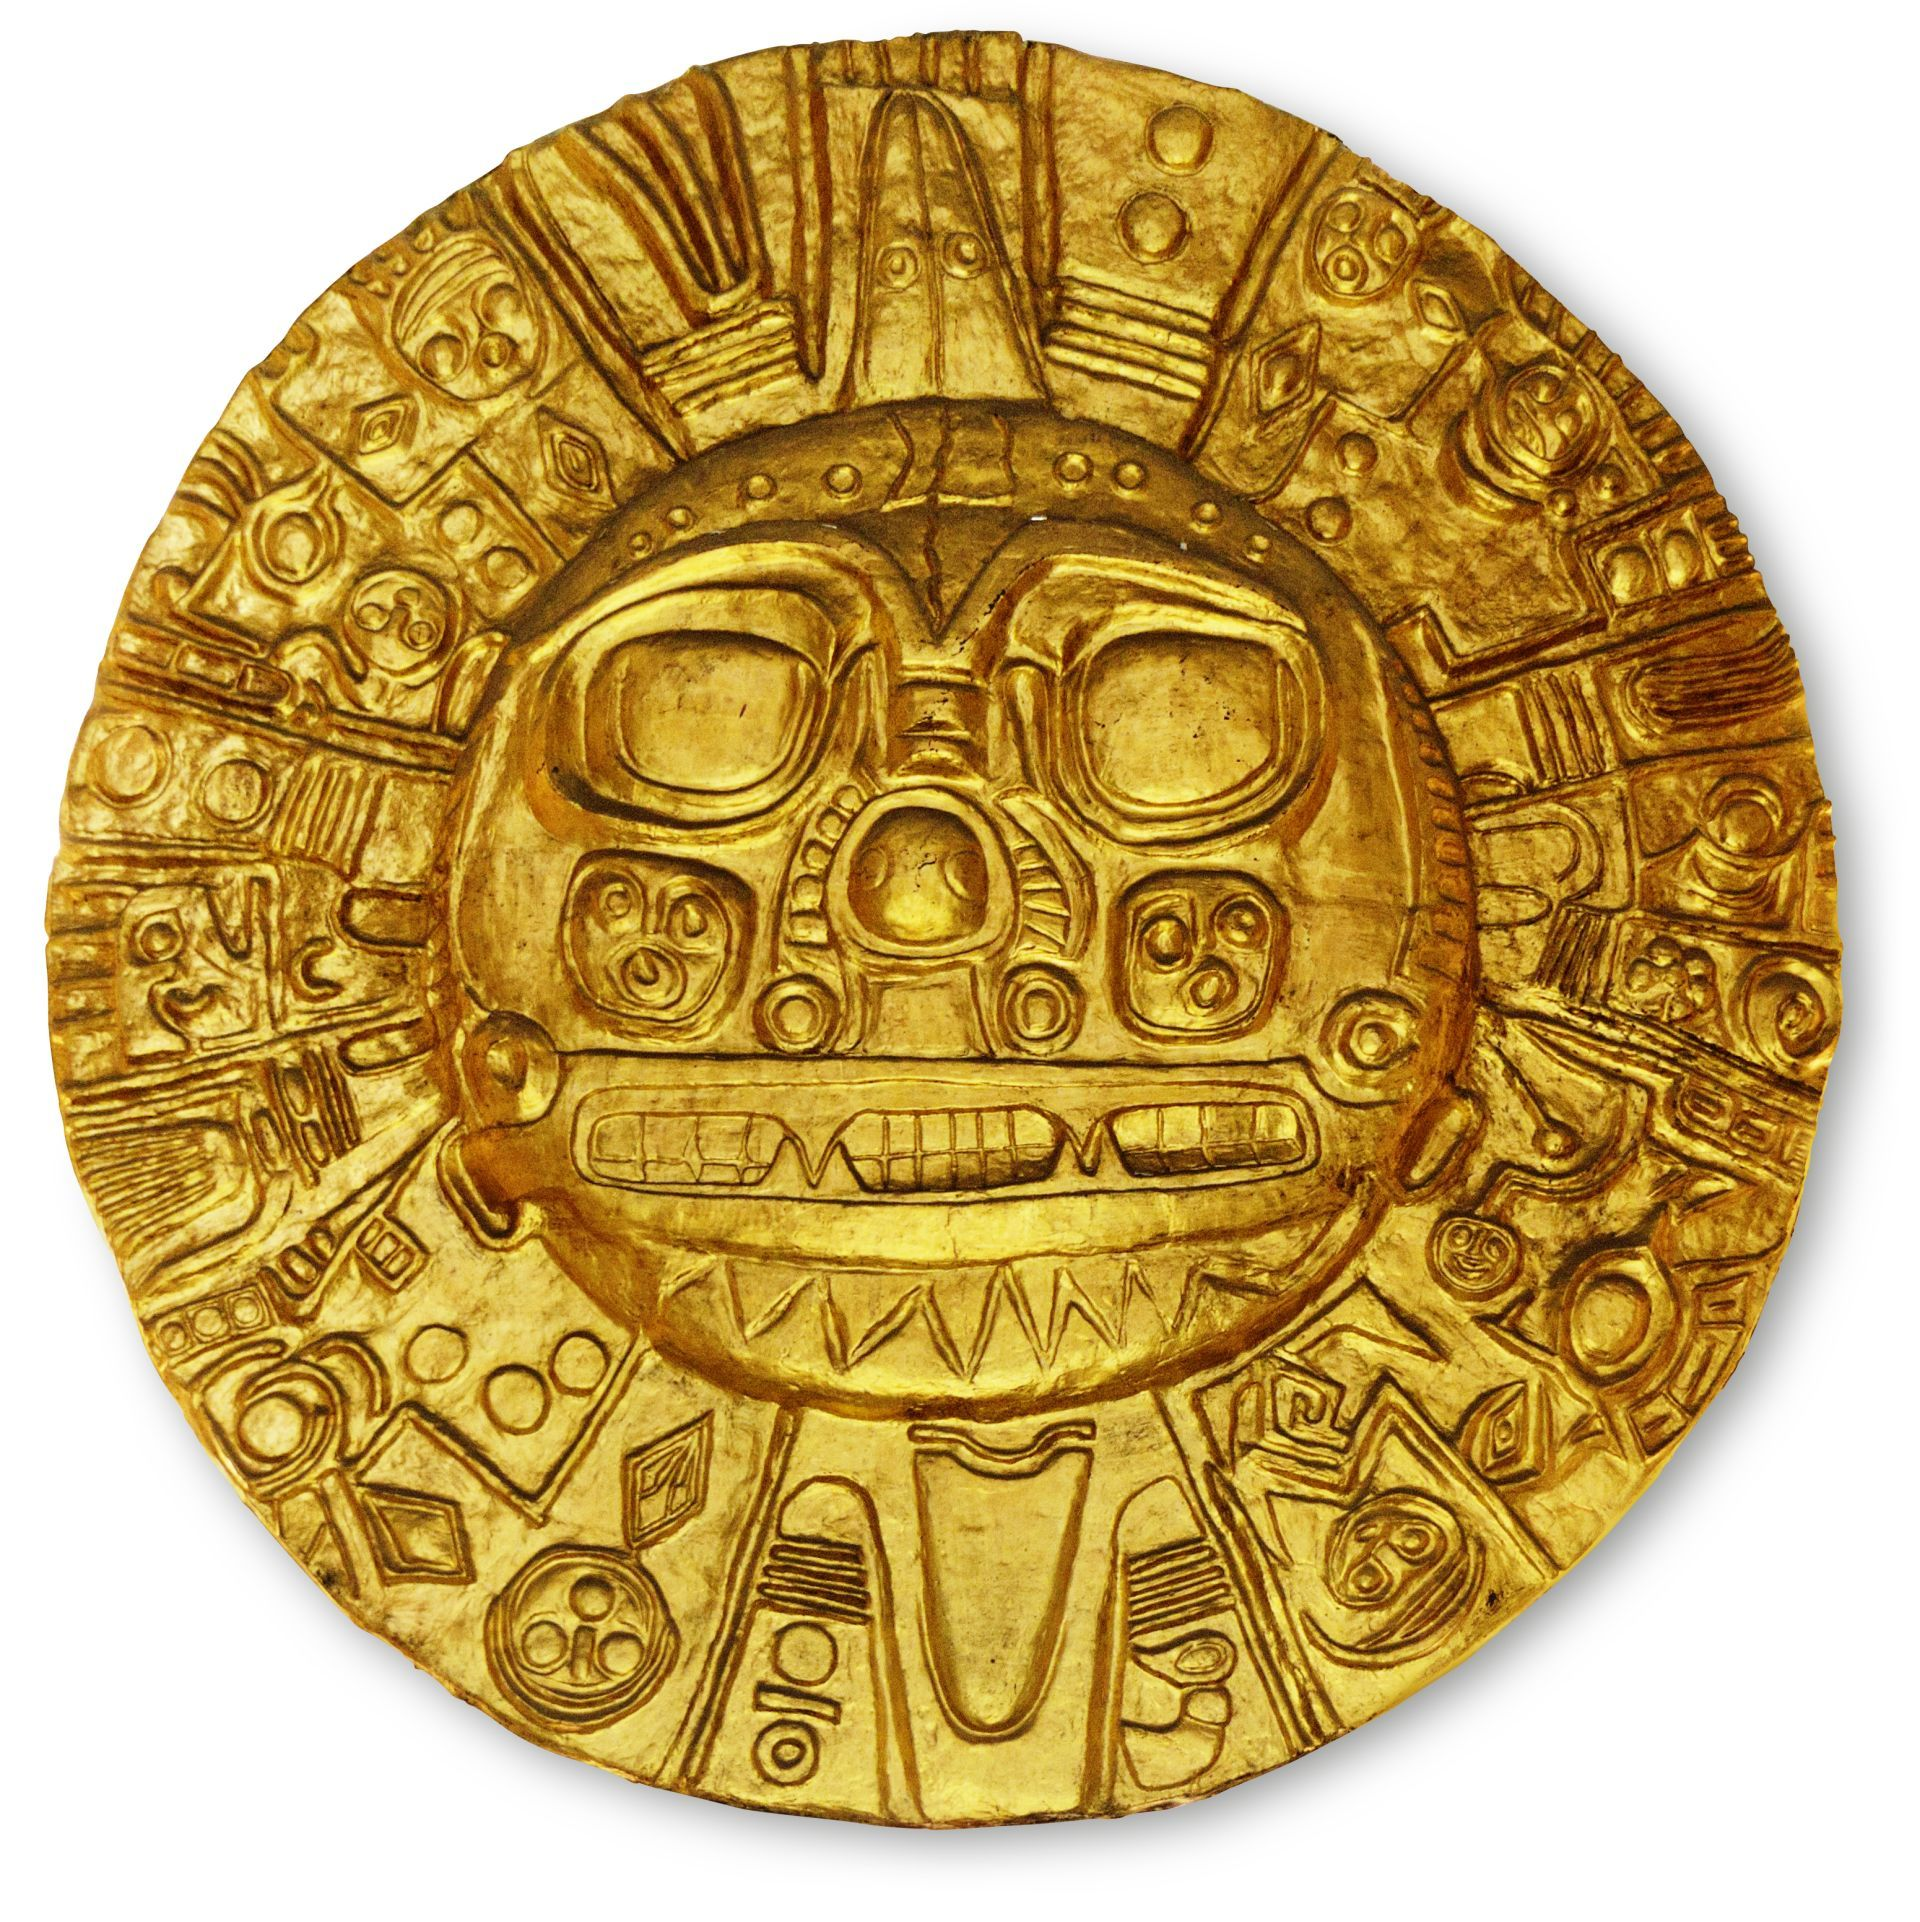 This Is An Interesting Website I Found About The Incas Mayans And